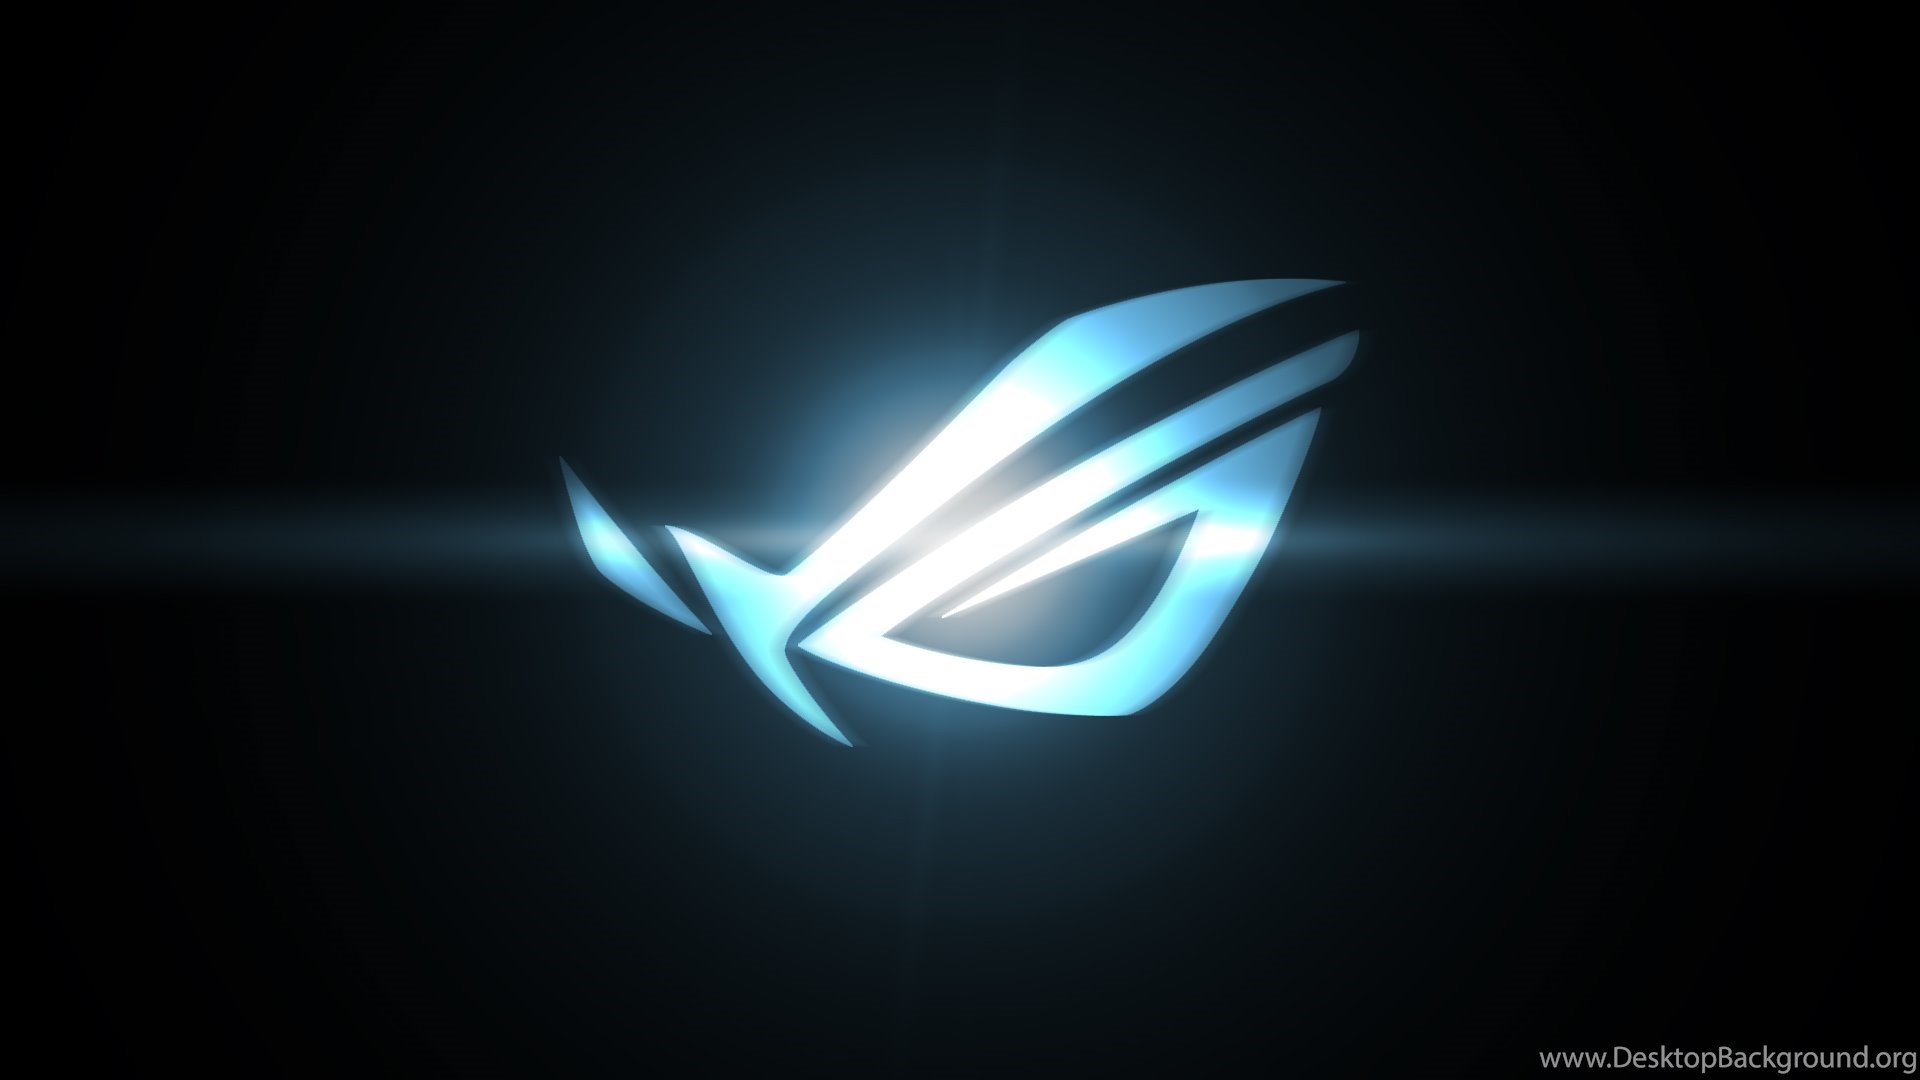 Asus Tuf Gaming Wallpaper Hd